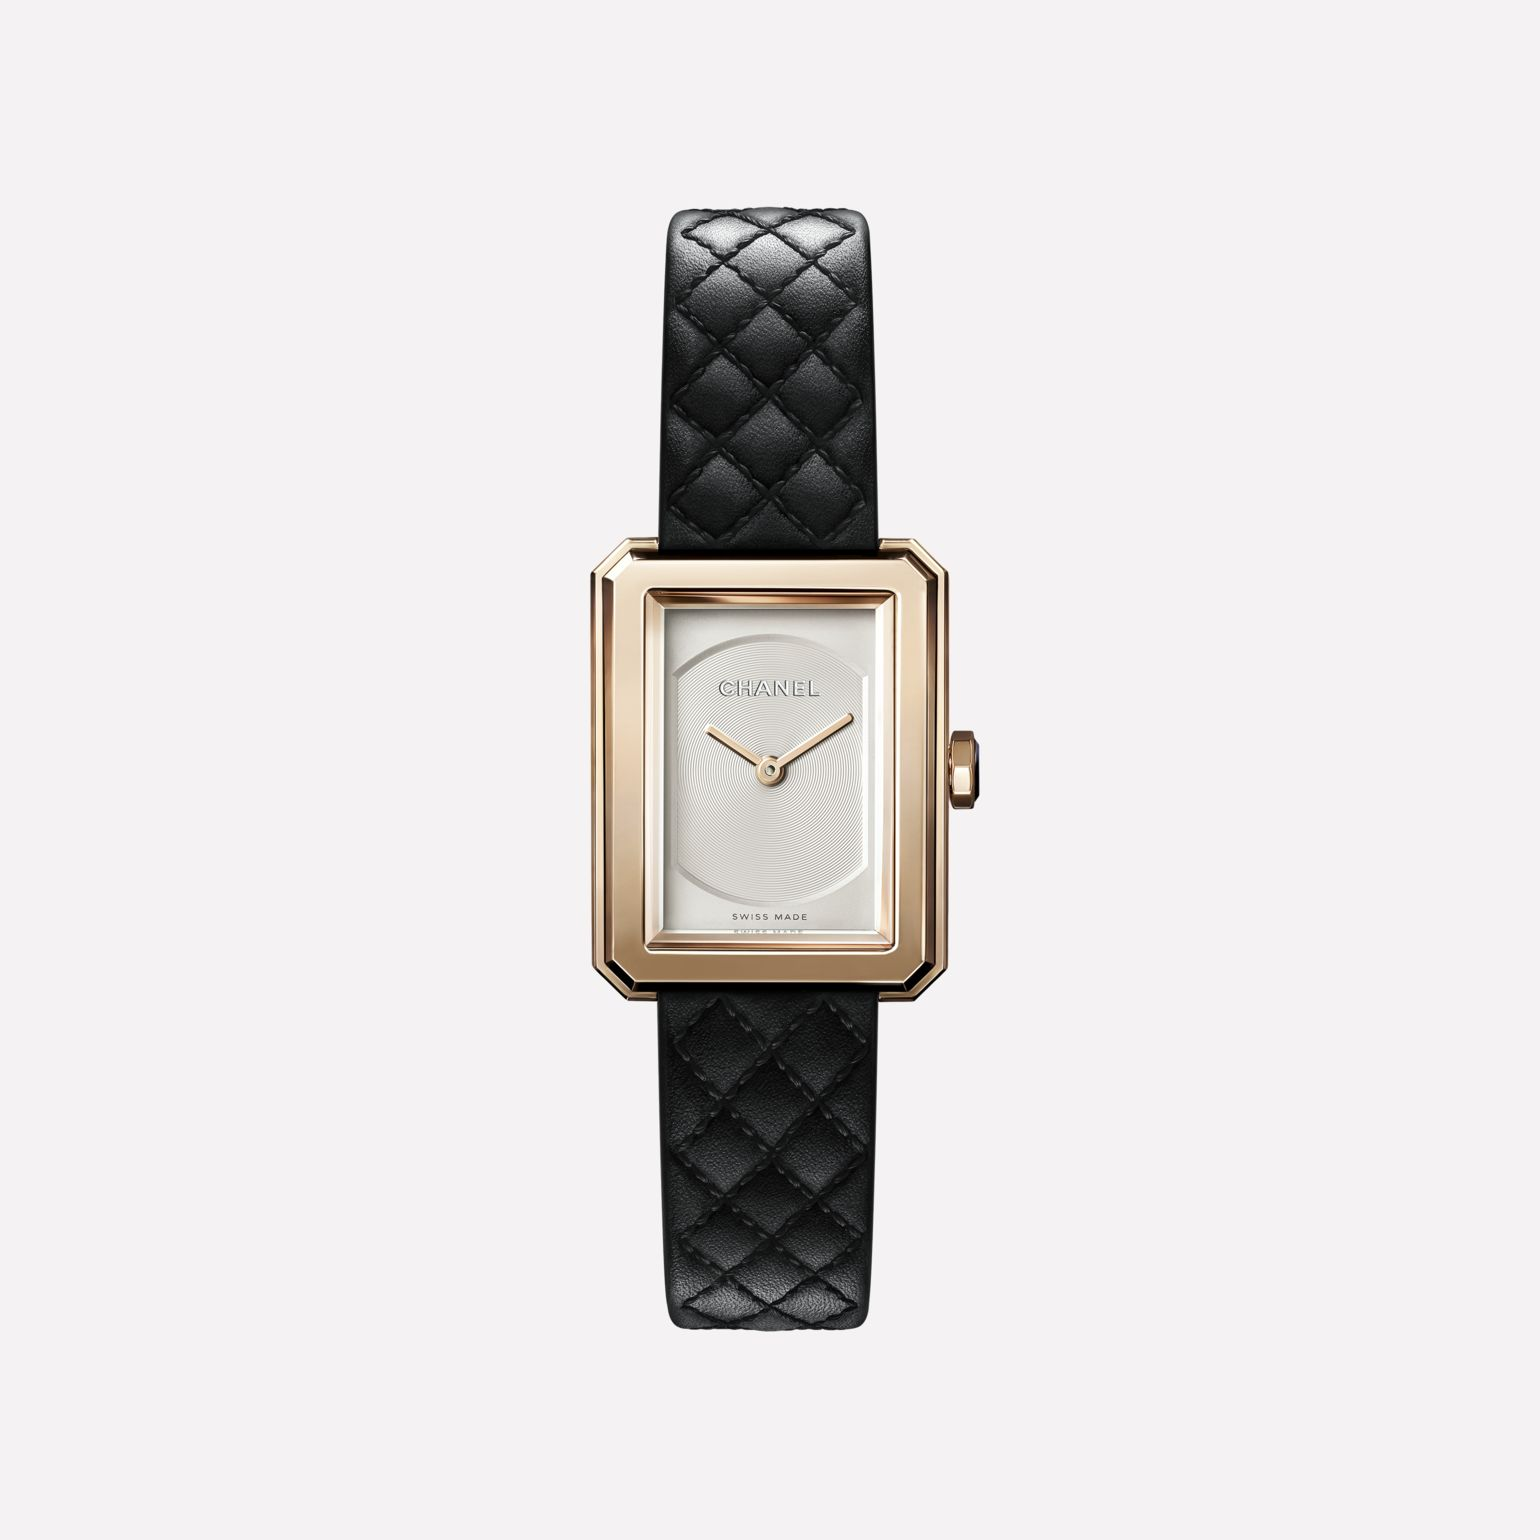 BOY·FRIEND watch Small version, BEIGE GOLD and quilted pattern calfskin strap